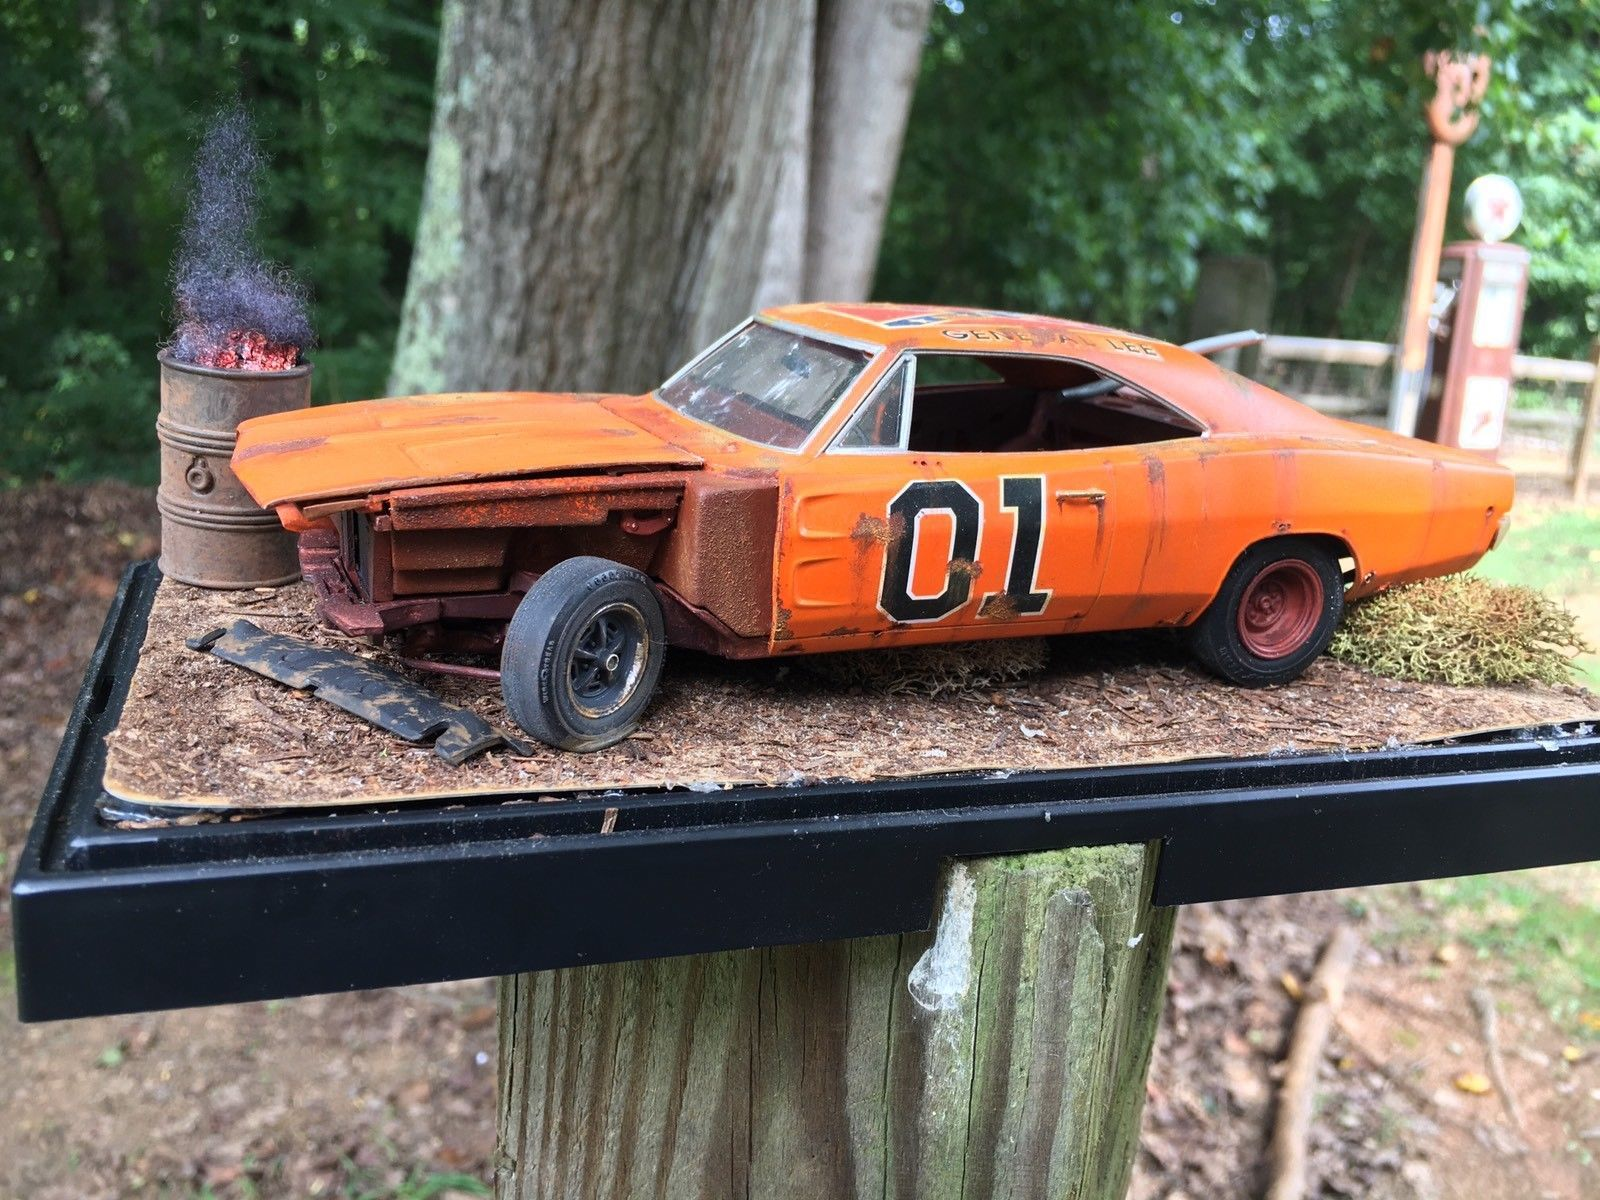 Dukes Of Hazard General Lee Model Built Diorama 1:24 Scale